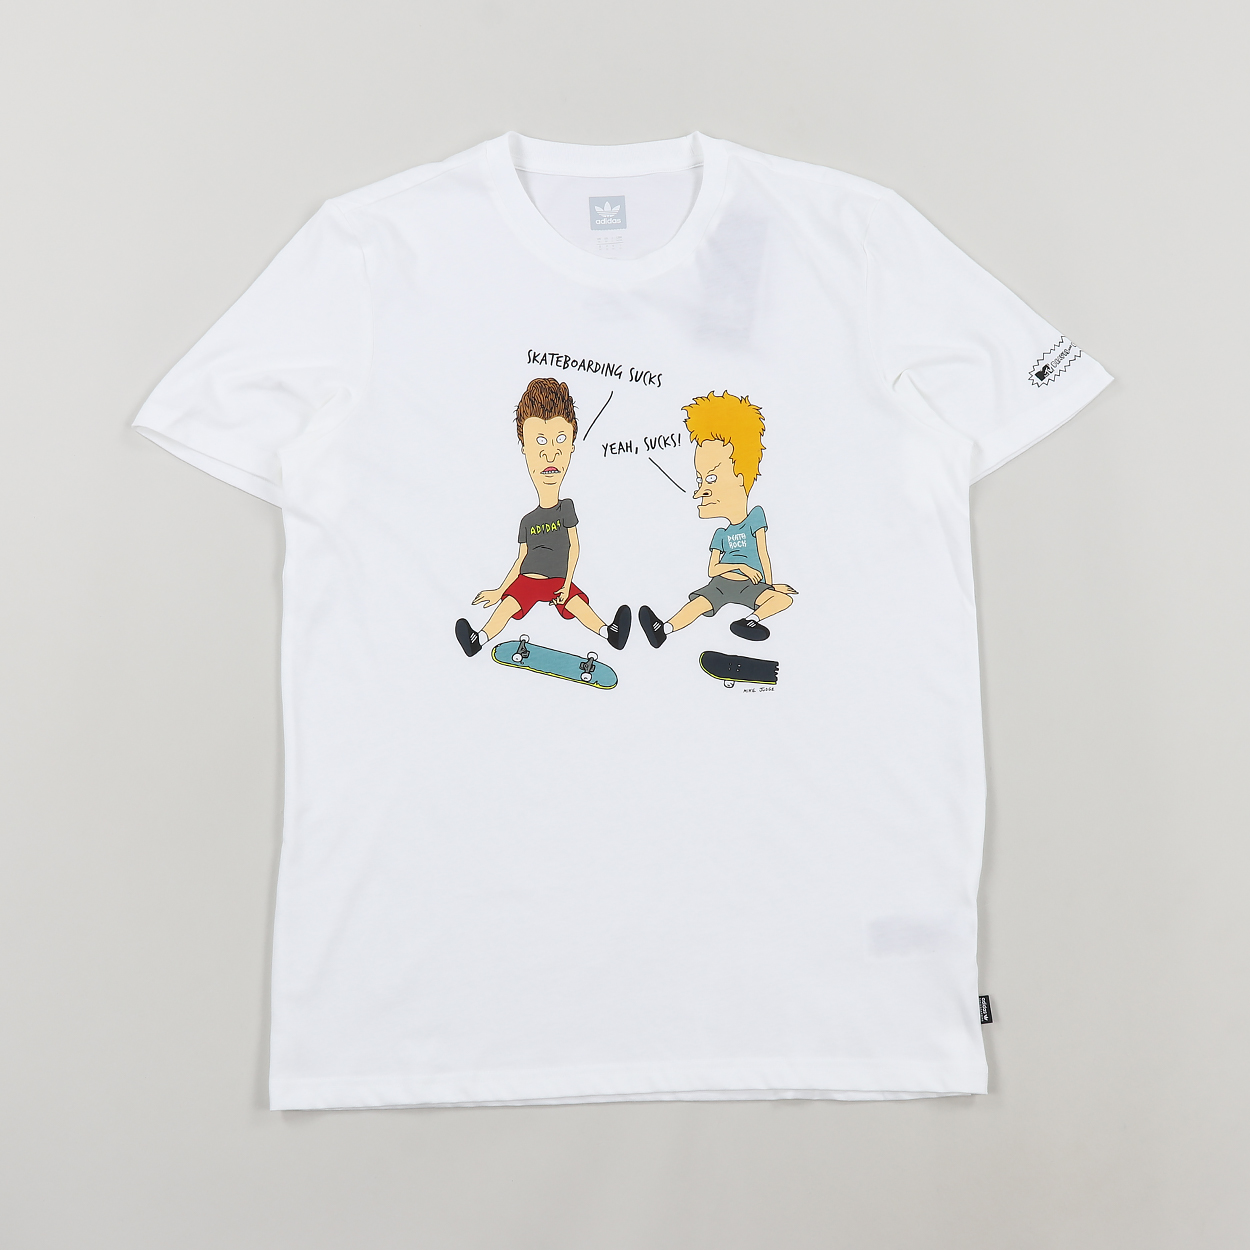 f953fc8df4f Adidas x Beavis and Butt-Head Mens Short Sleeve T Shirt White £19.00